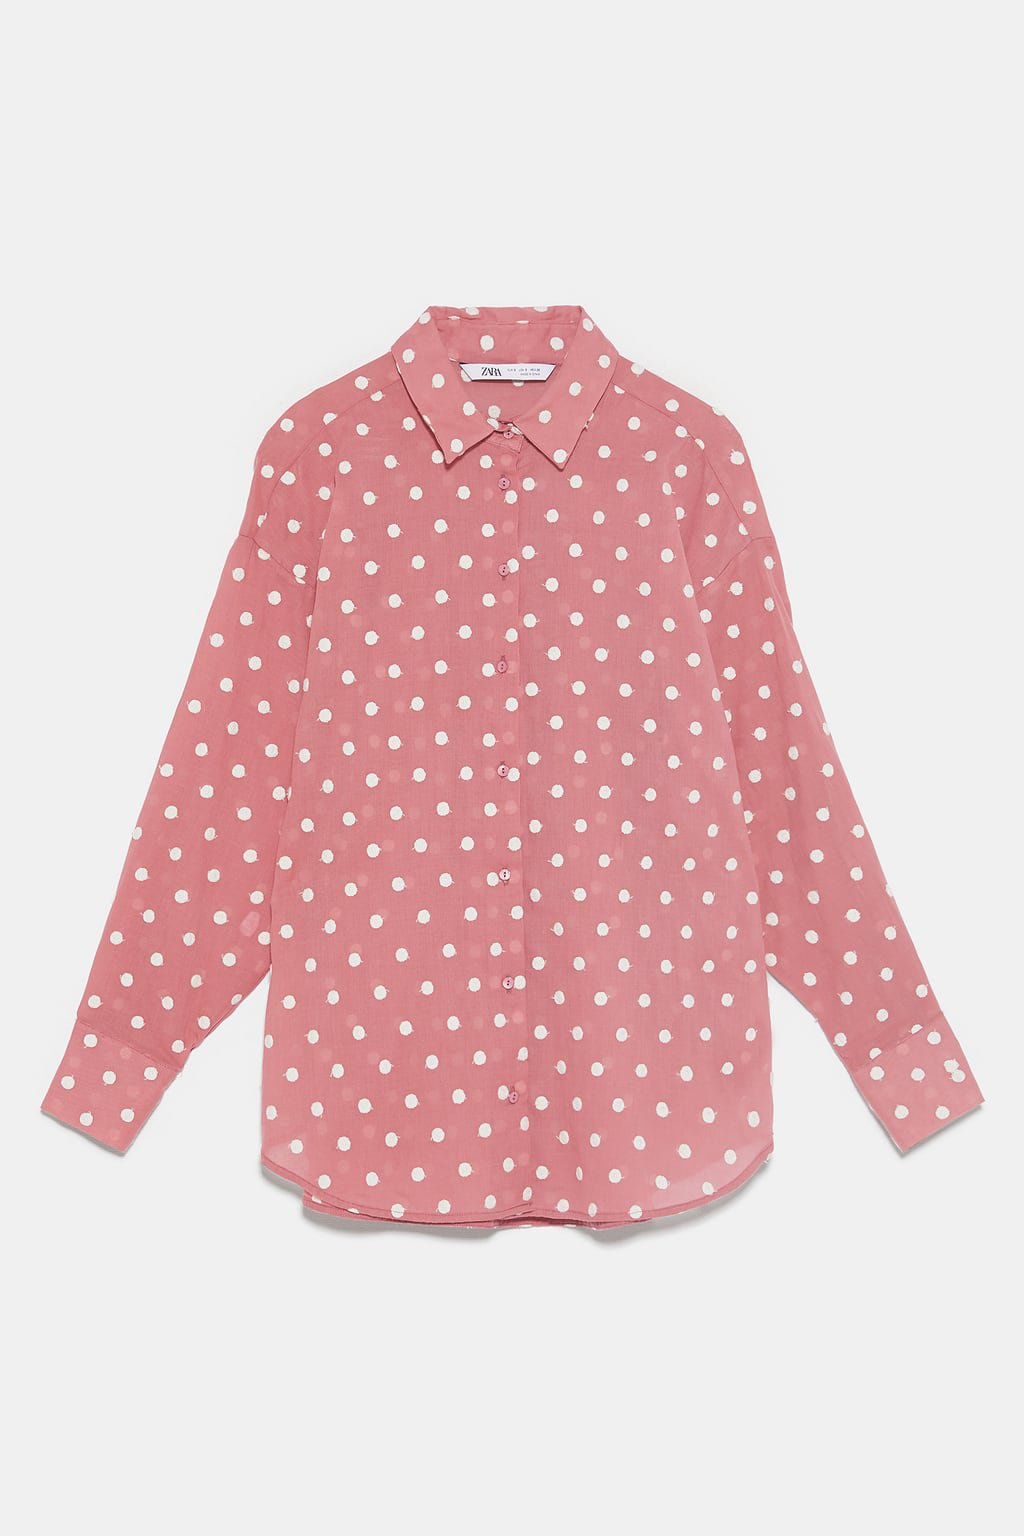 POLKA DOT SHIRT WITH EMBROIDERY - View All-SHIRTS | BLOUSES-WOMAN | ZARA United States